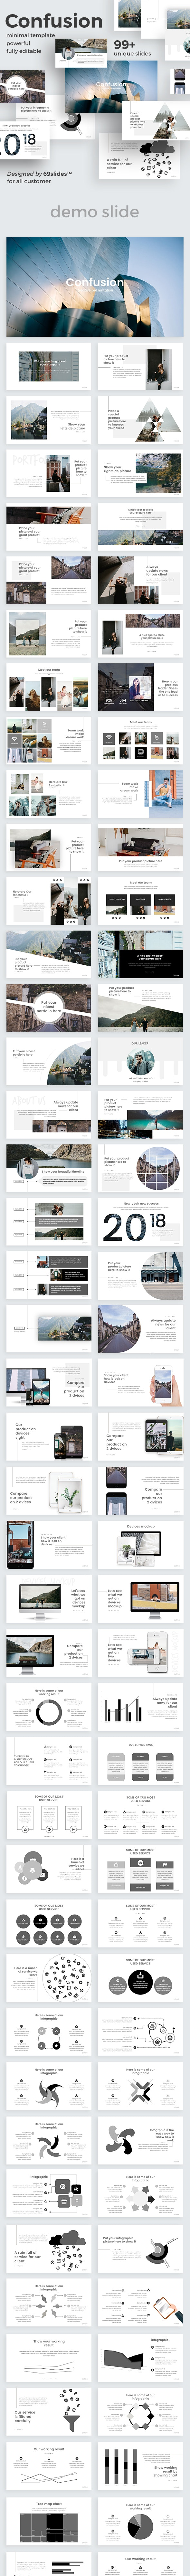 Confusion Creative Powerpoint Template - Creative PowerPoint Templates